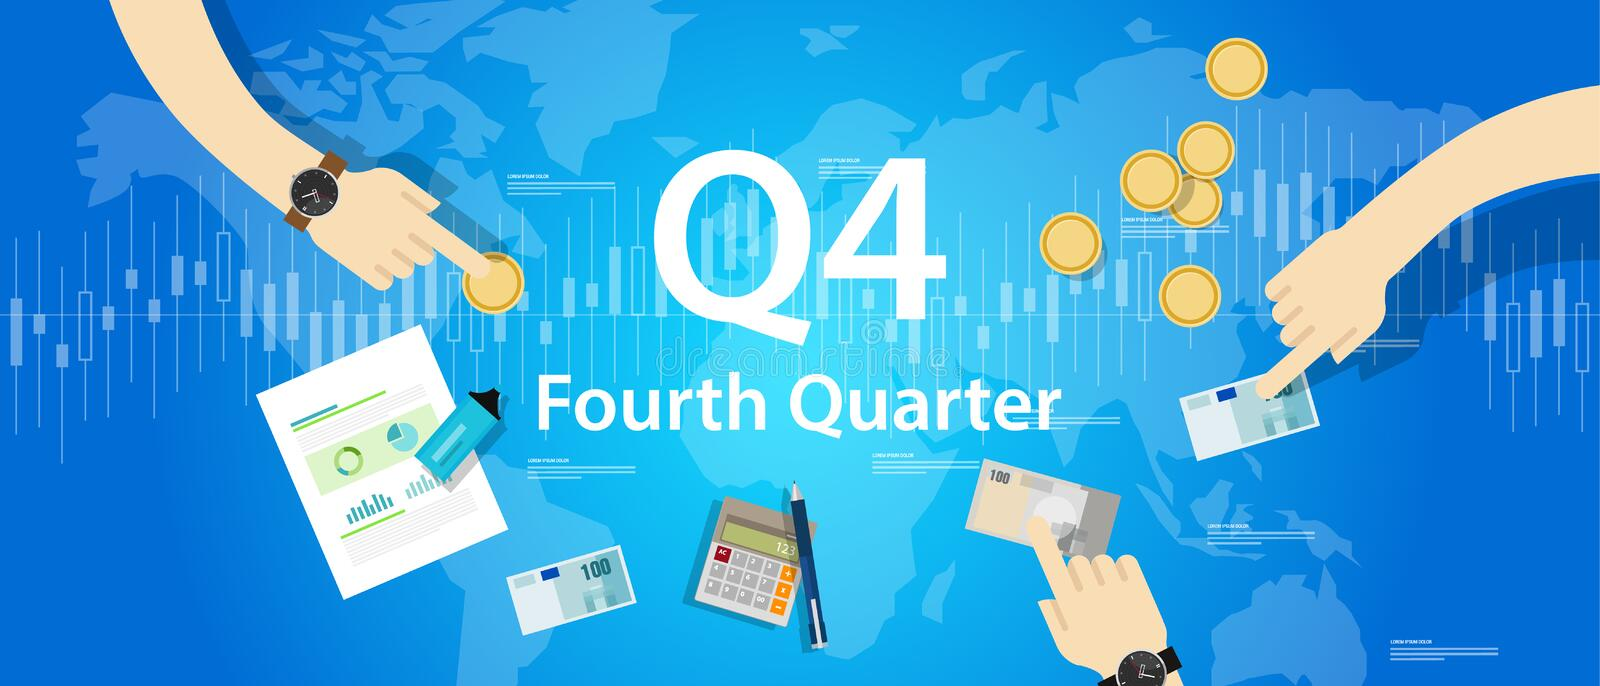 Q4 fourth quarter business report target corporate financial result stock illustration